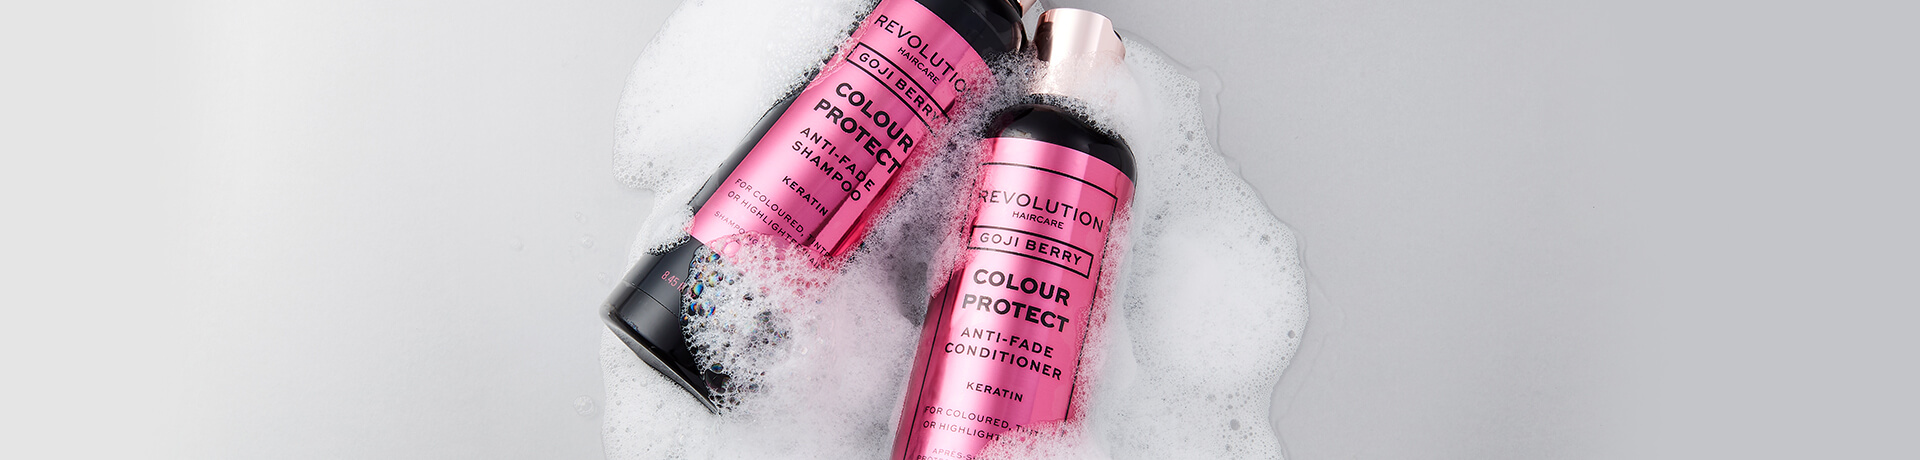 Our Revolution Haircare line that will revolutionise your routine